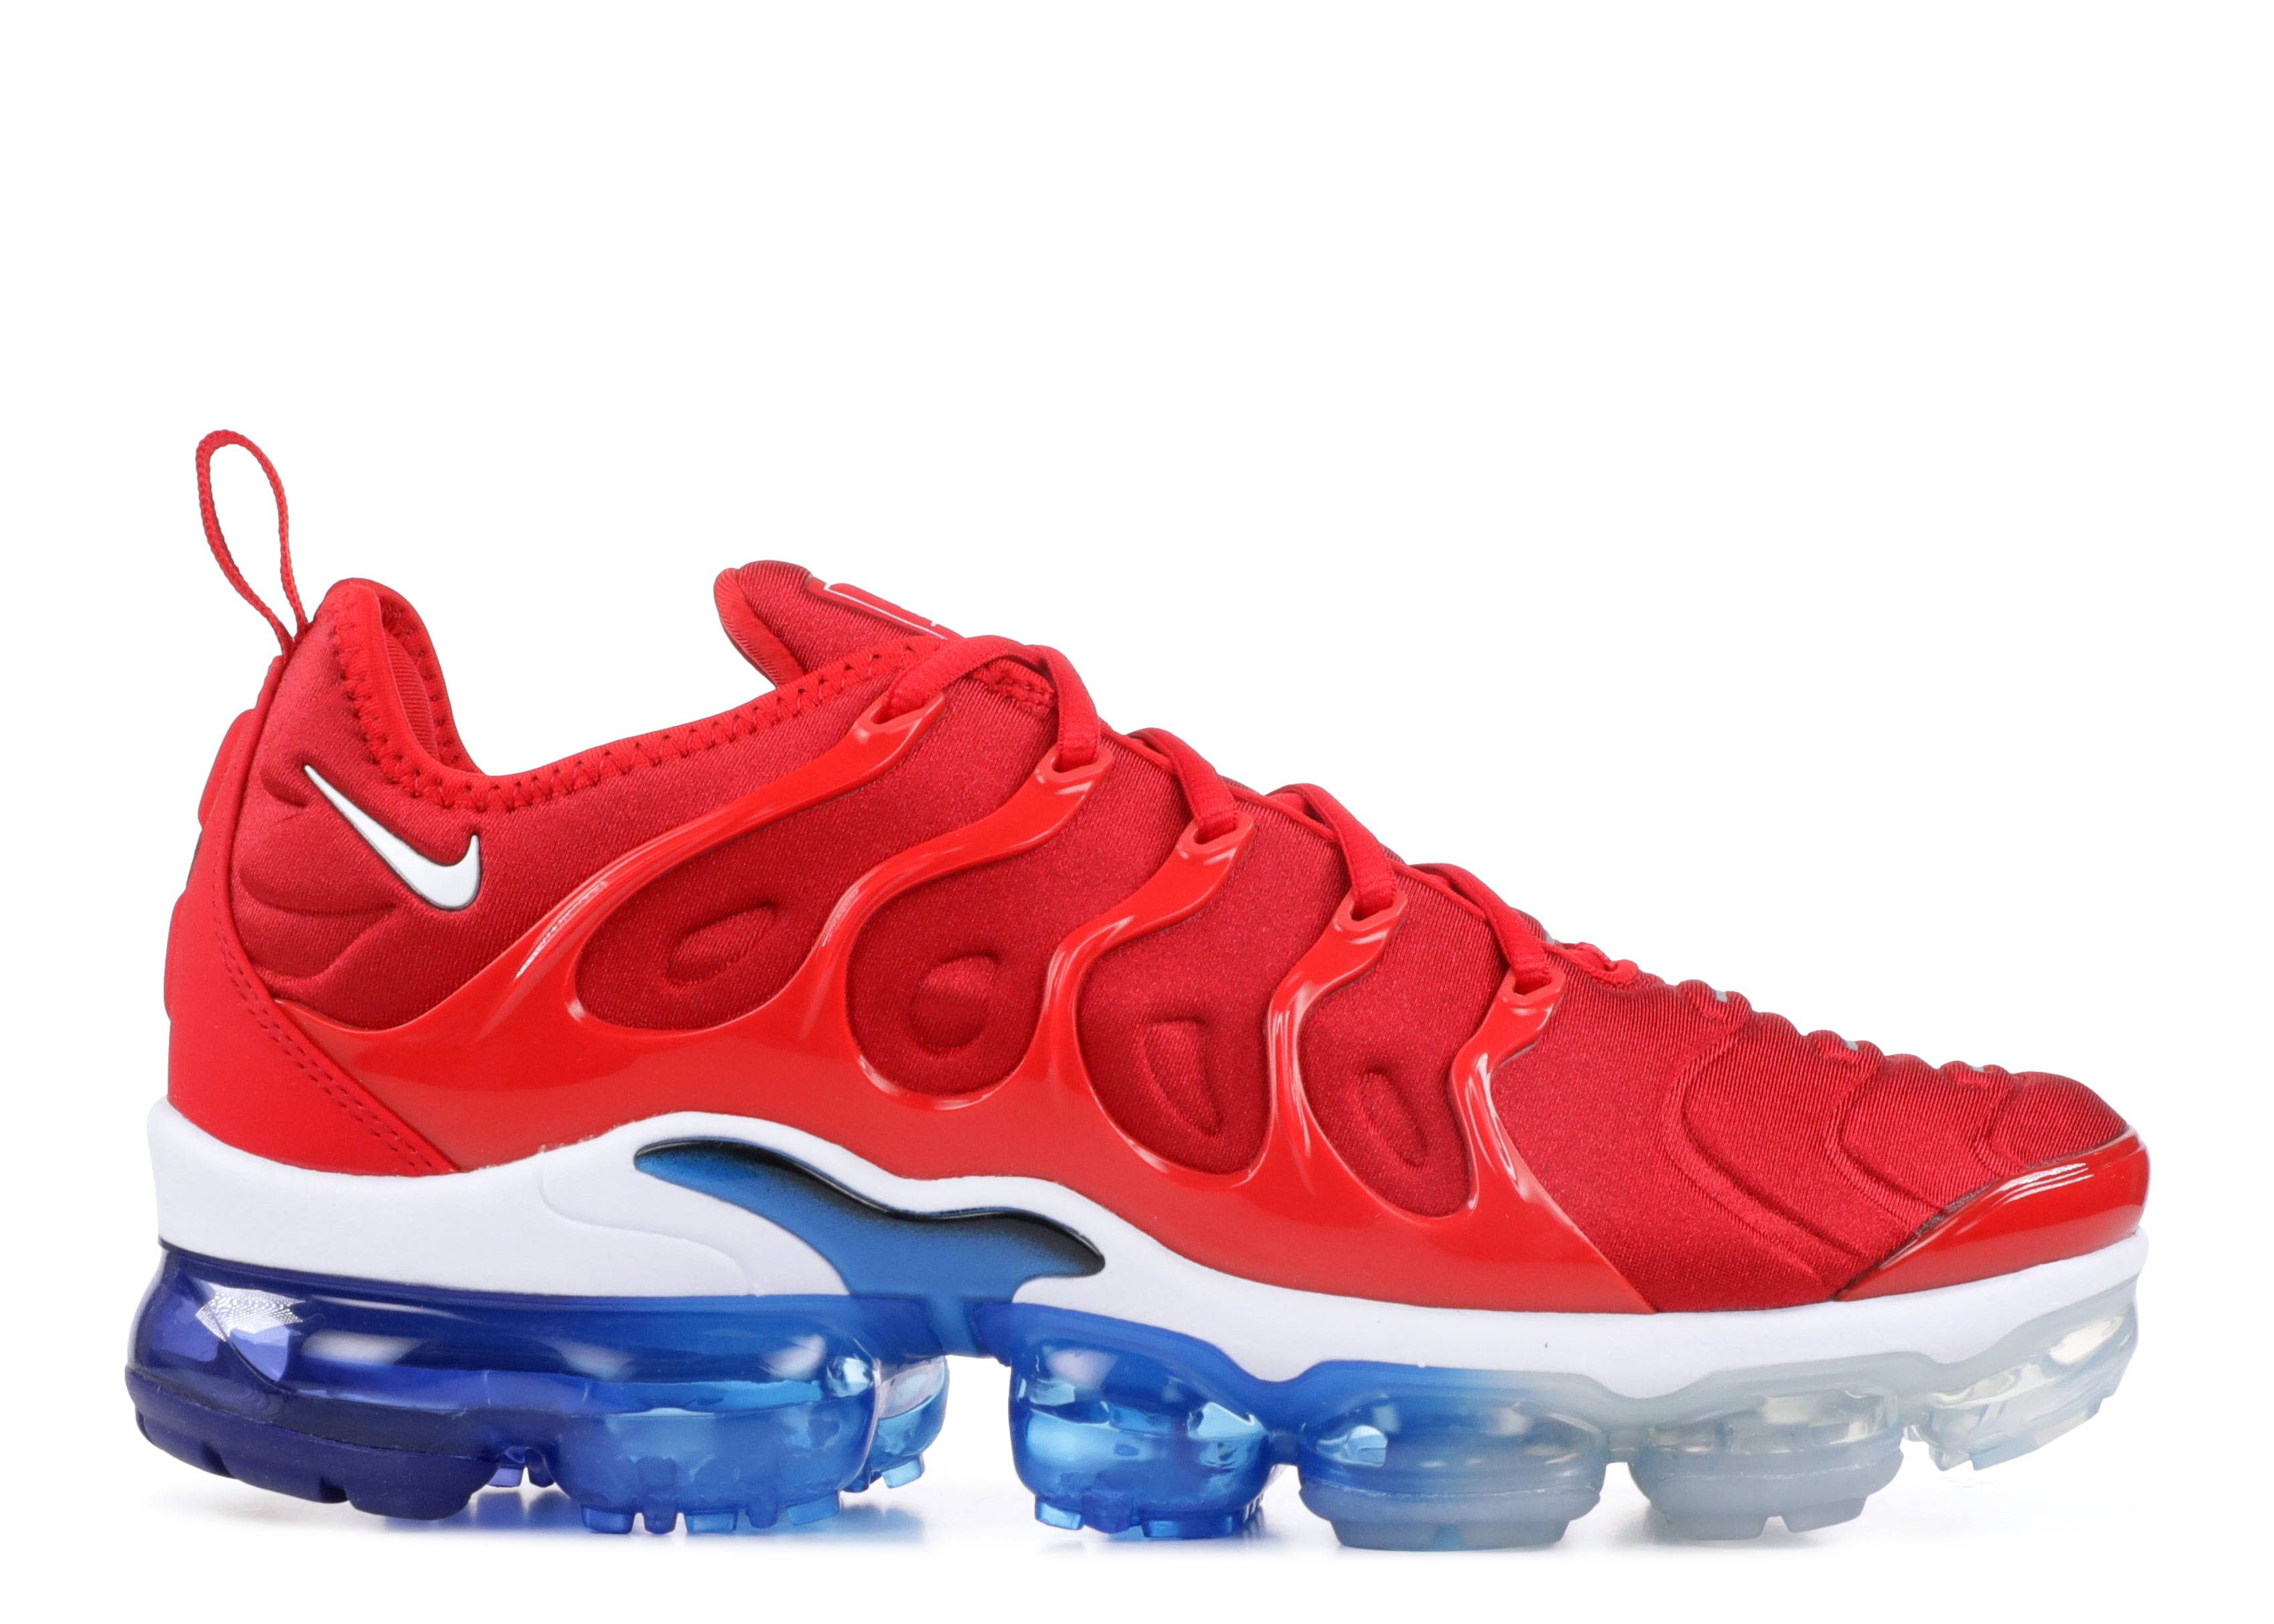 9a4a7f9c62ee3 Air Vapormax Plus